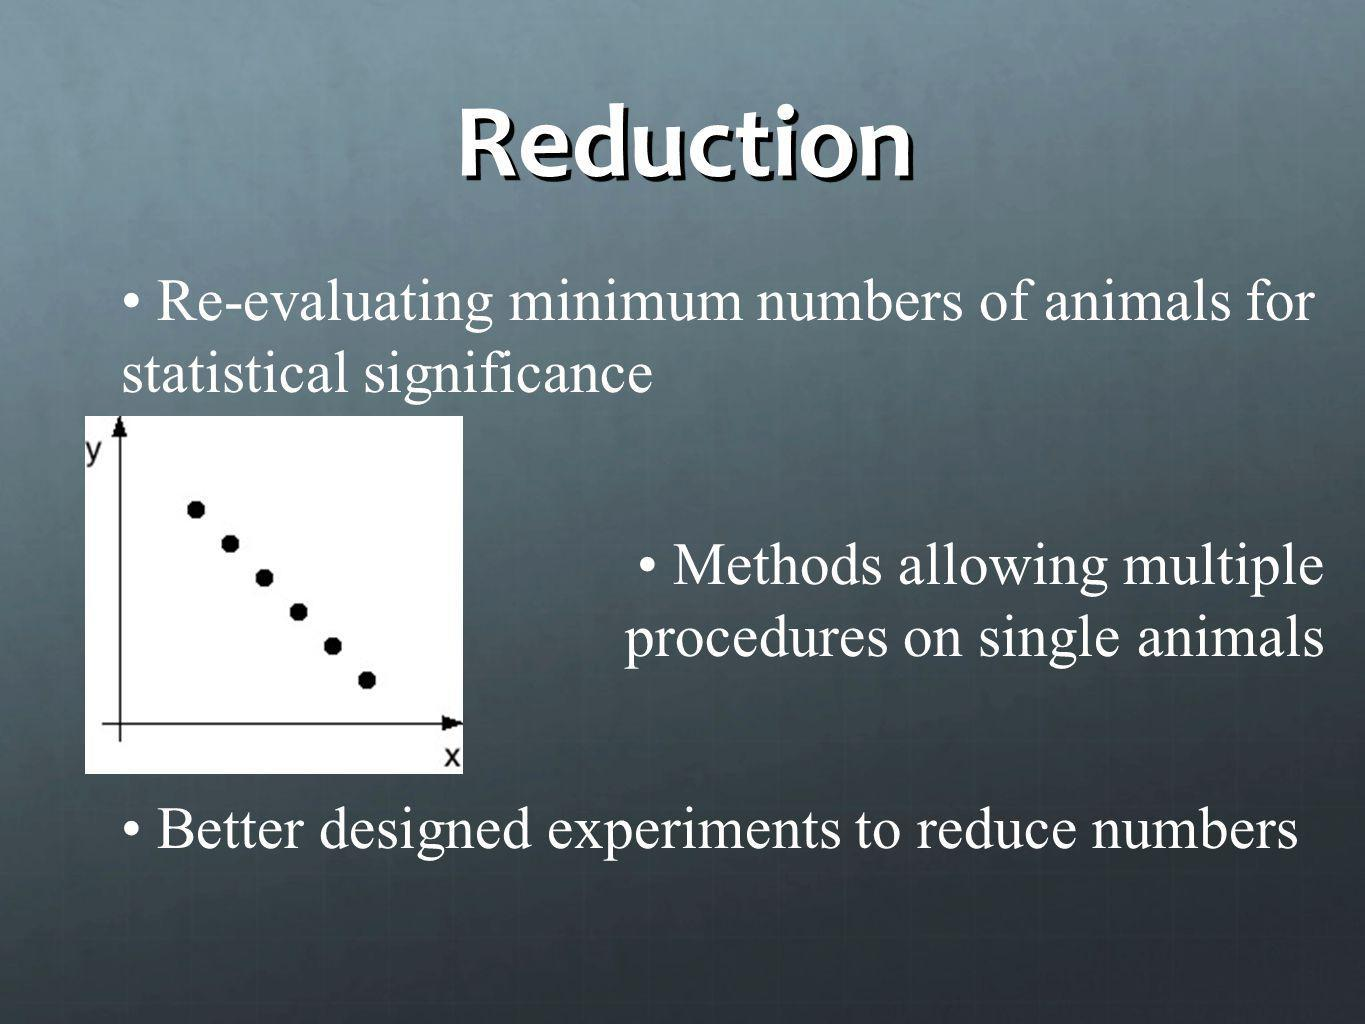 Reduction Re-evaluating minimum numbers of animals for statistical significance. Methods allowing multiple procedures on single animals.